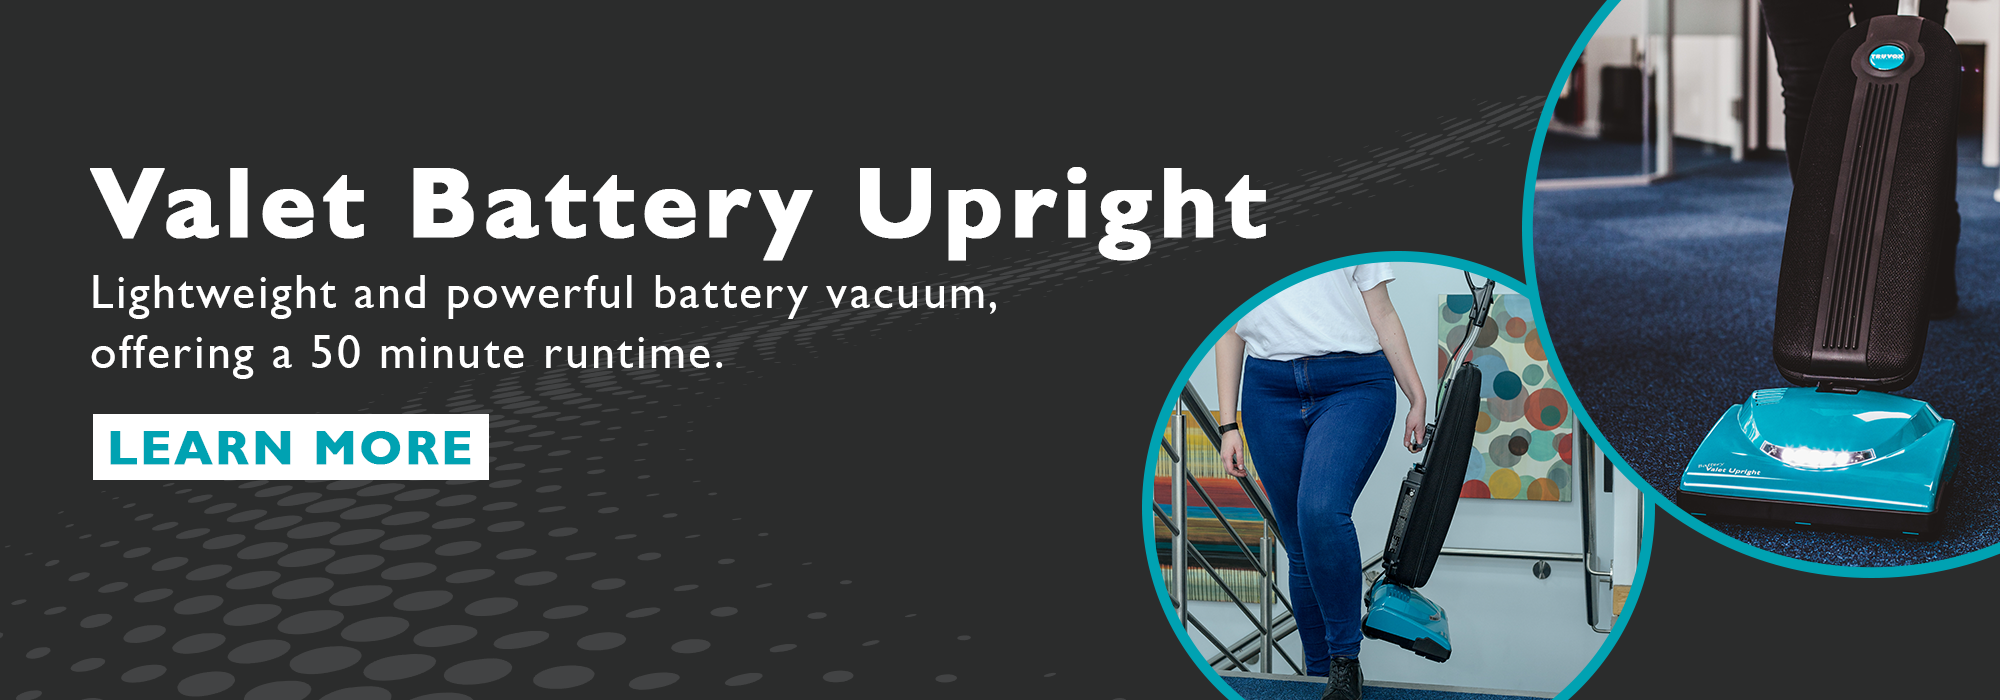 VBU battery upright vacuum